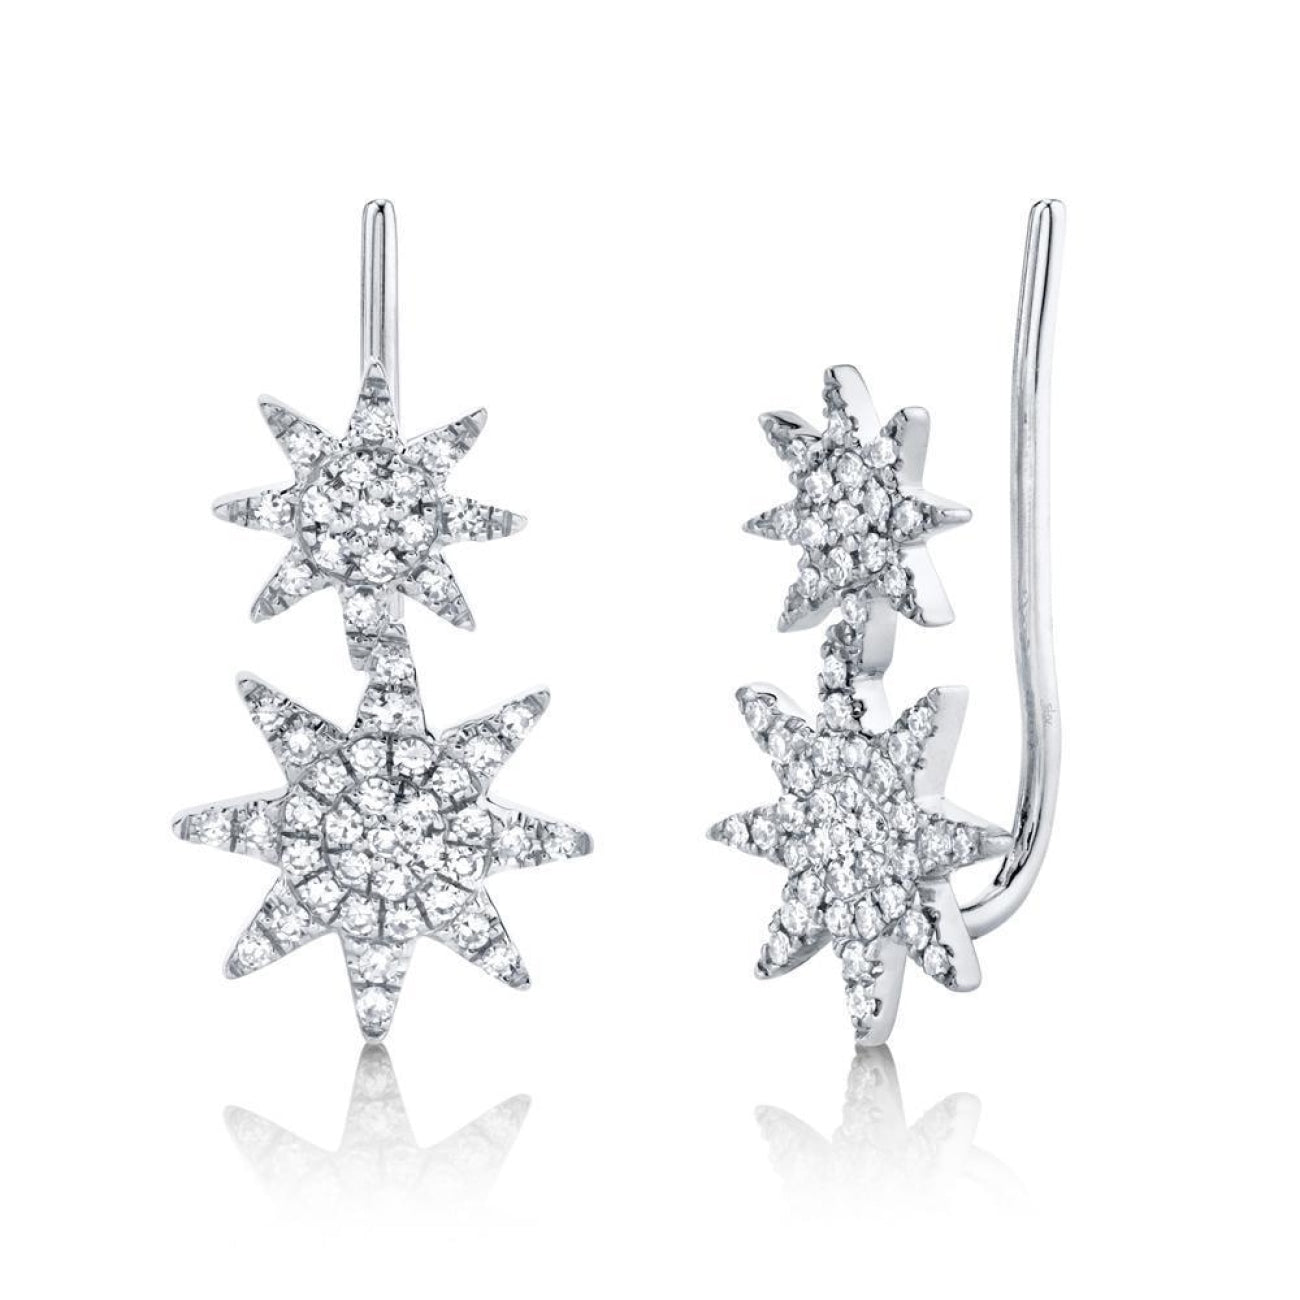 Shy Creation Jewelry - 0.22CT DIAMOND PAVE STAR EAR CRAWLER EARRING | Manfredi Jewels